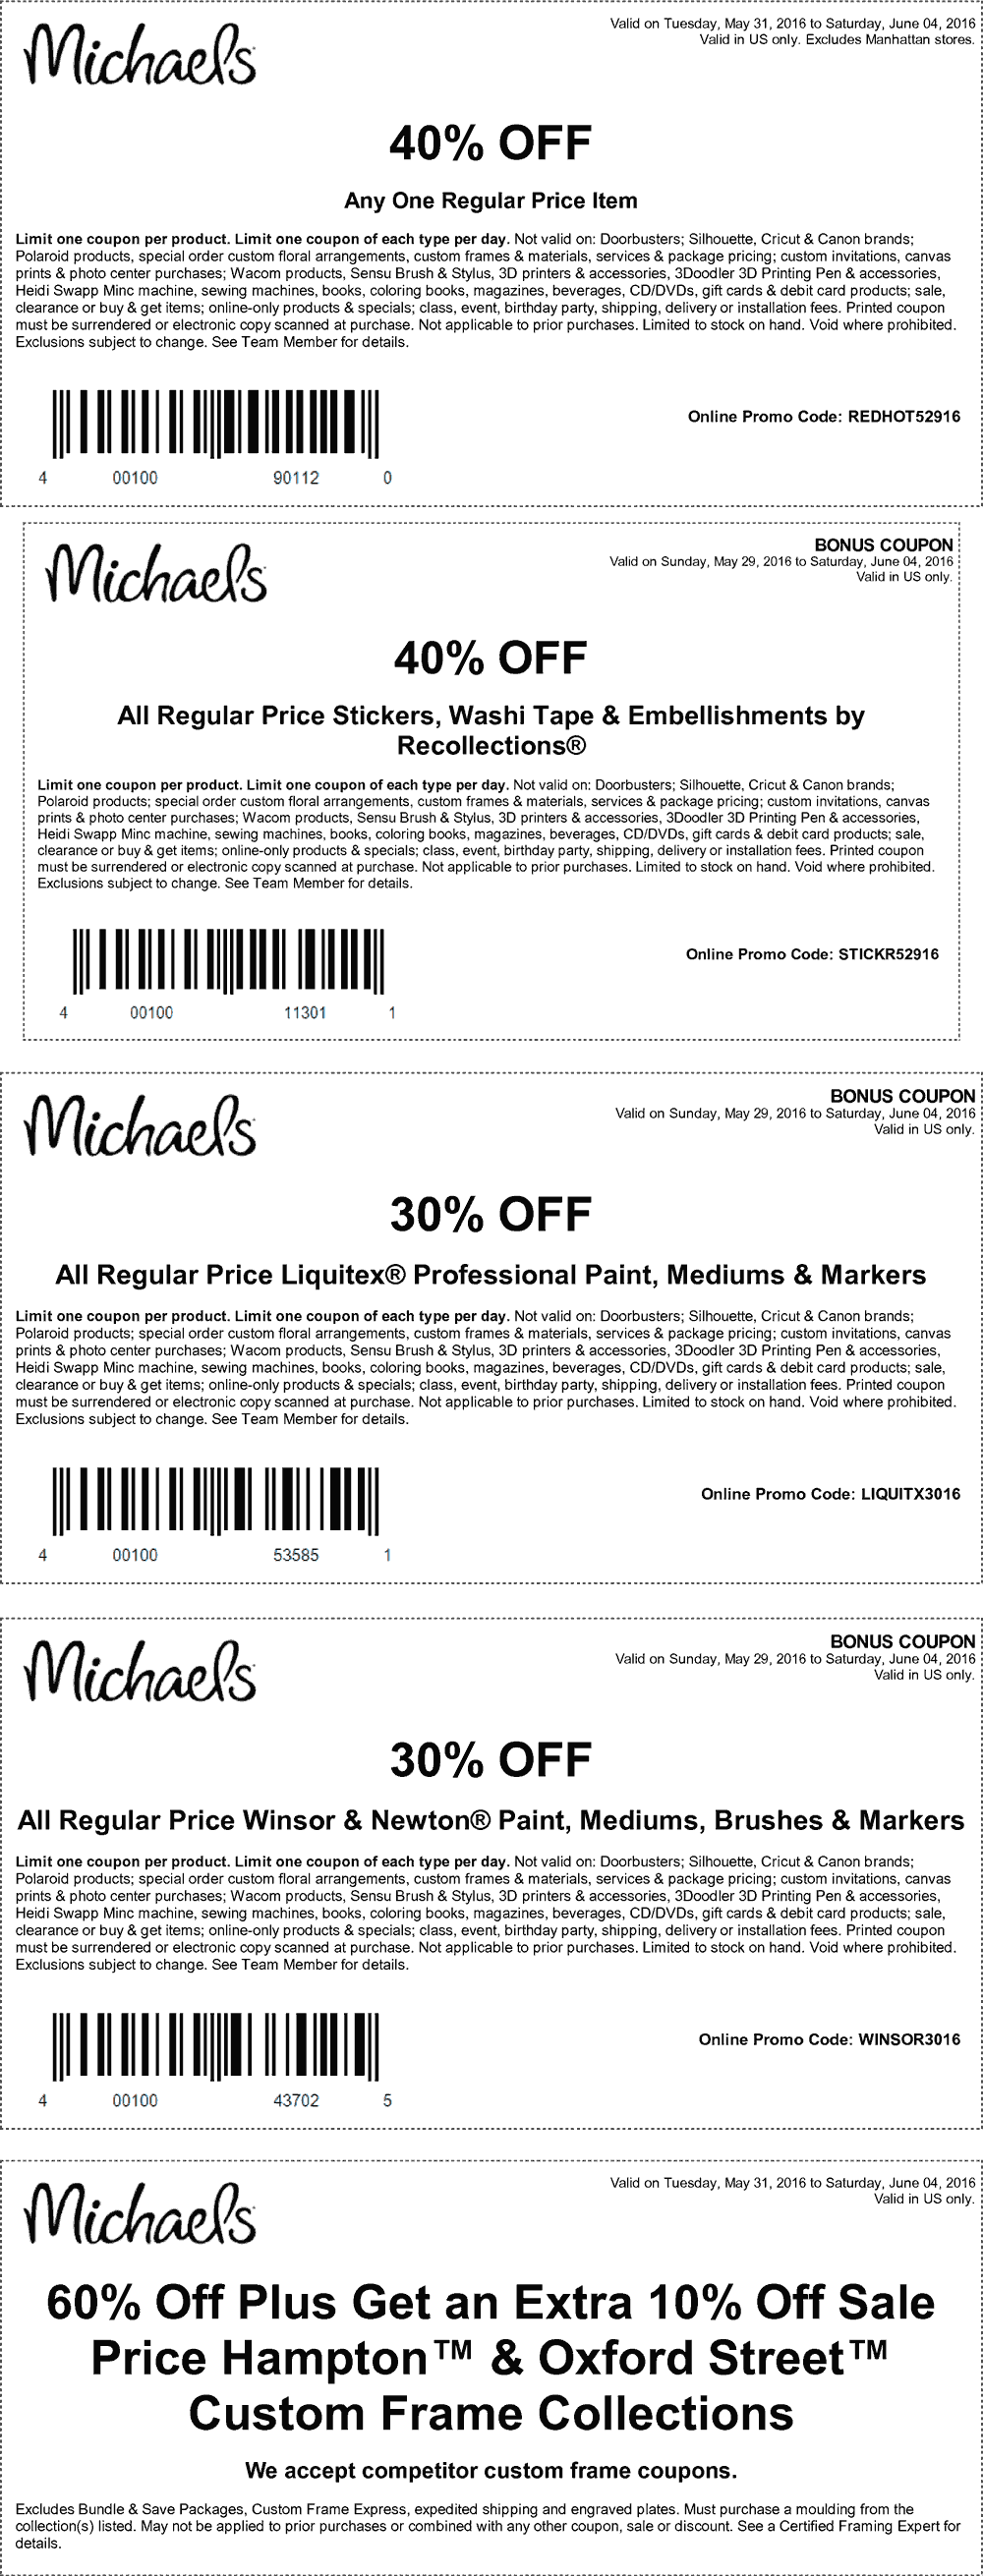 Michaels Coupon May 2018 40% off a single item & more at Michaels, or online via promo code REDHOT52916